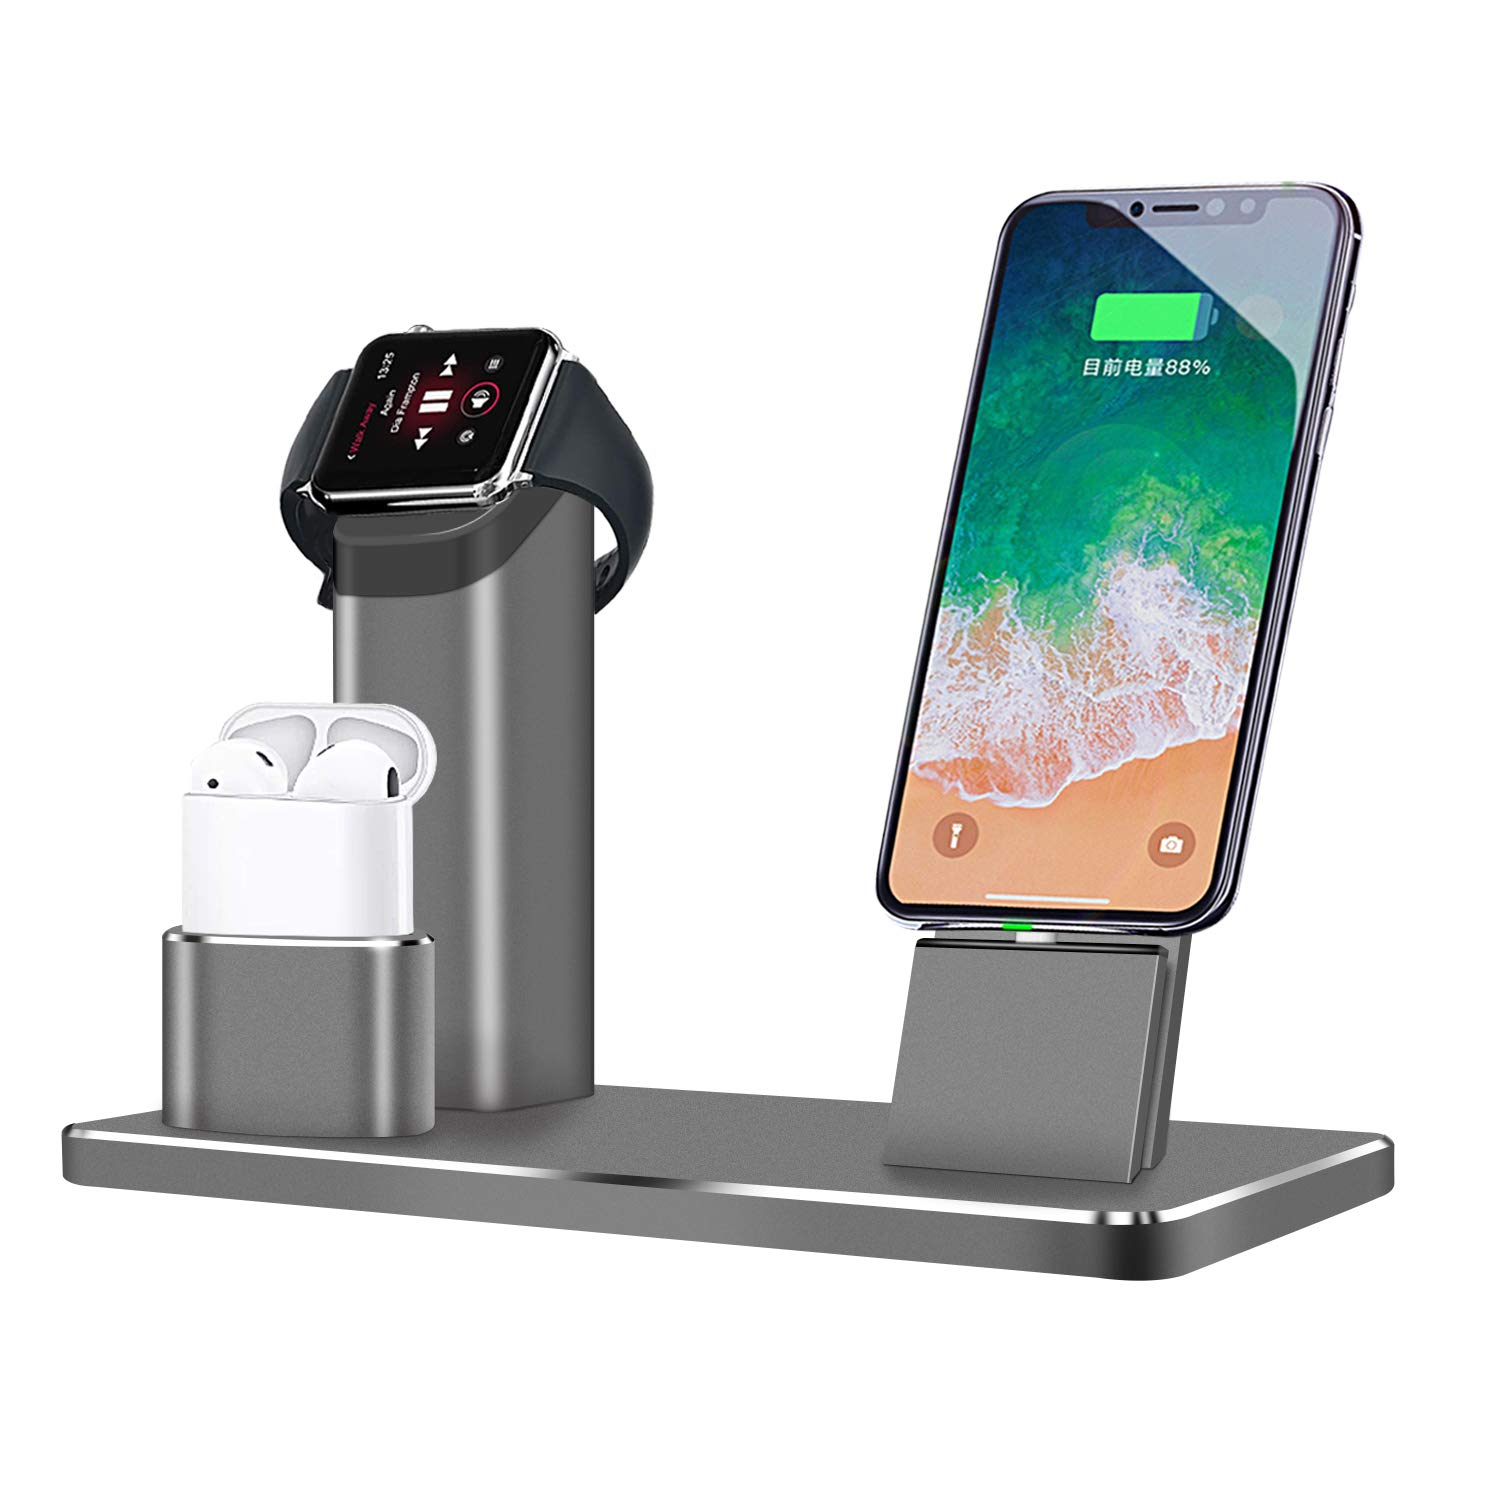 ASOON for Apple Watch Stand, 3 in 1 Aluminum Alloy Charging Station for Airpods/iPhone X/ 8 /7/ 6 /6S/ Plus/ iPad/Apple Watch (Gray)